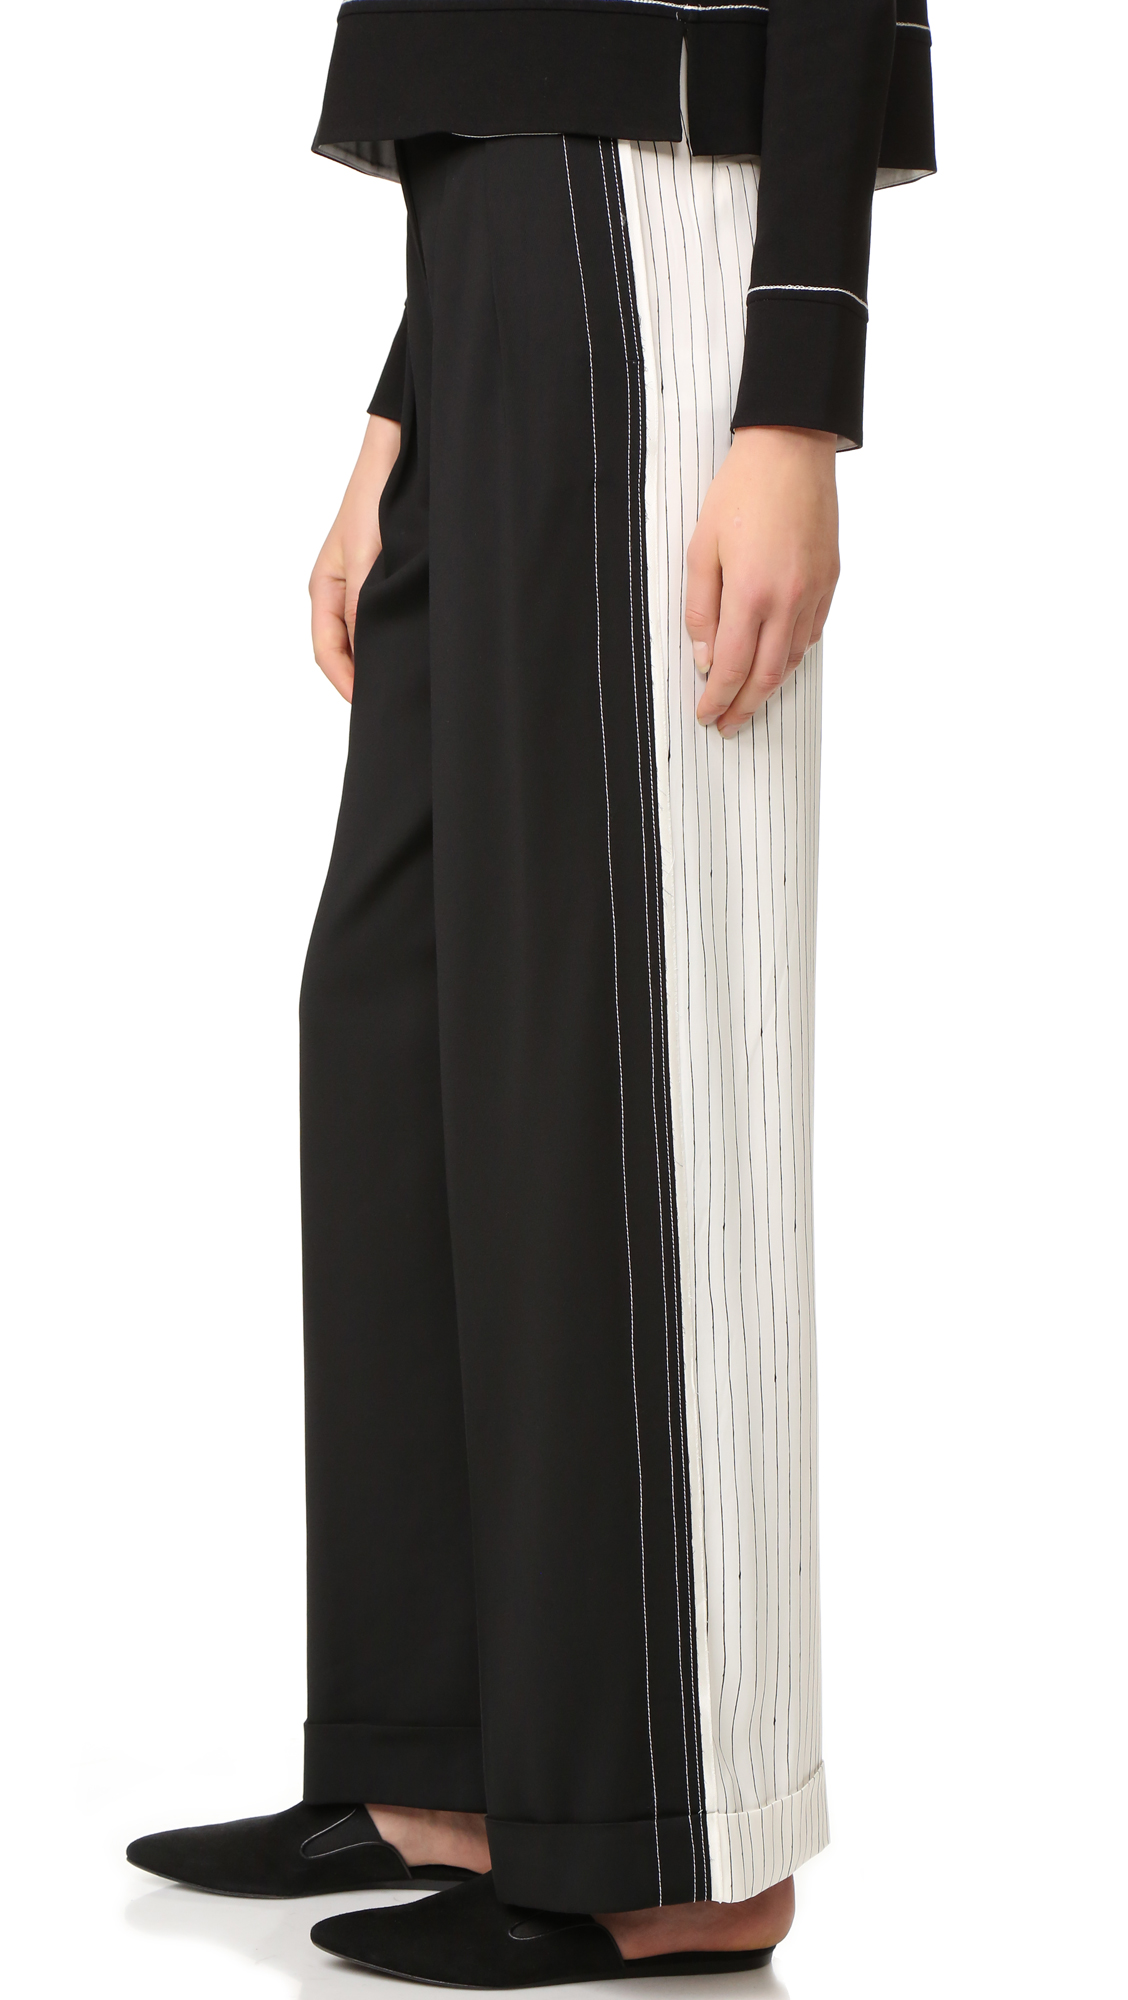 Pleated, high rise DKNY trousers are solid in the front and striped in back. Raw side seams lend a deconstructed feel to the wide leg silhouette. Fixed, rolled cuffs. Welt back pockets. Extended tab hook and